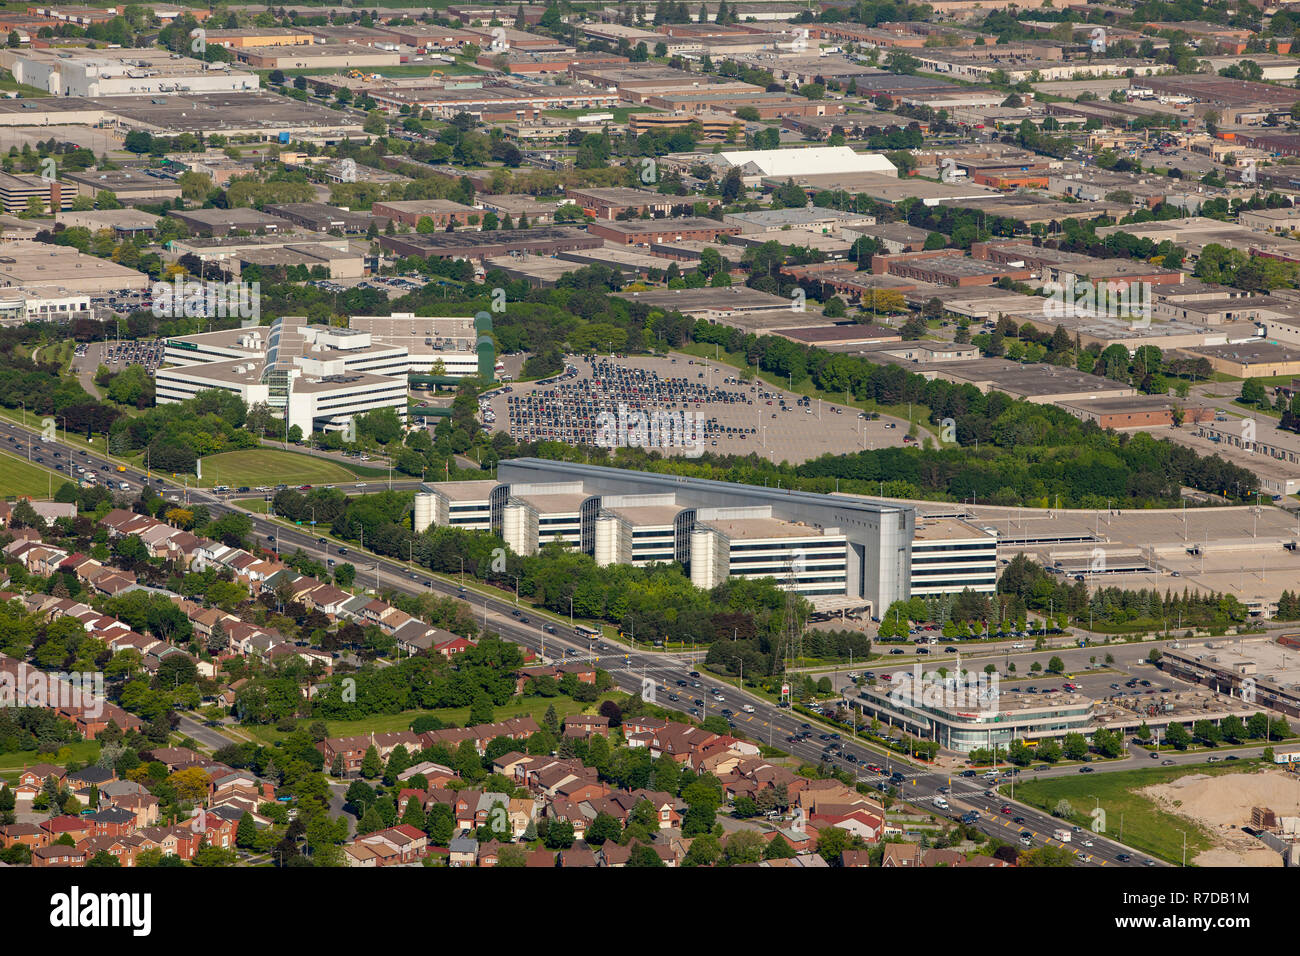 An Aerial view of IBM headquarters in Markham Ontario. - Stock Image